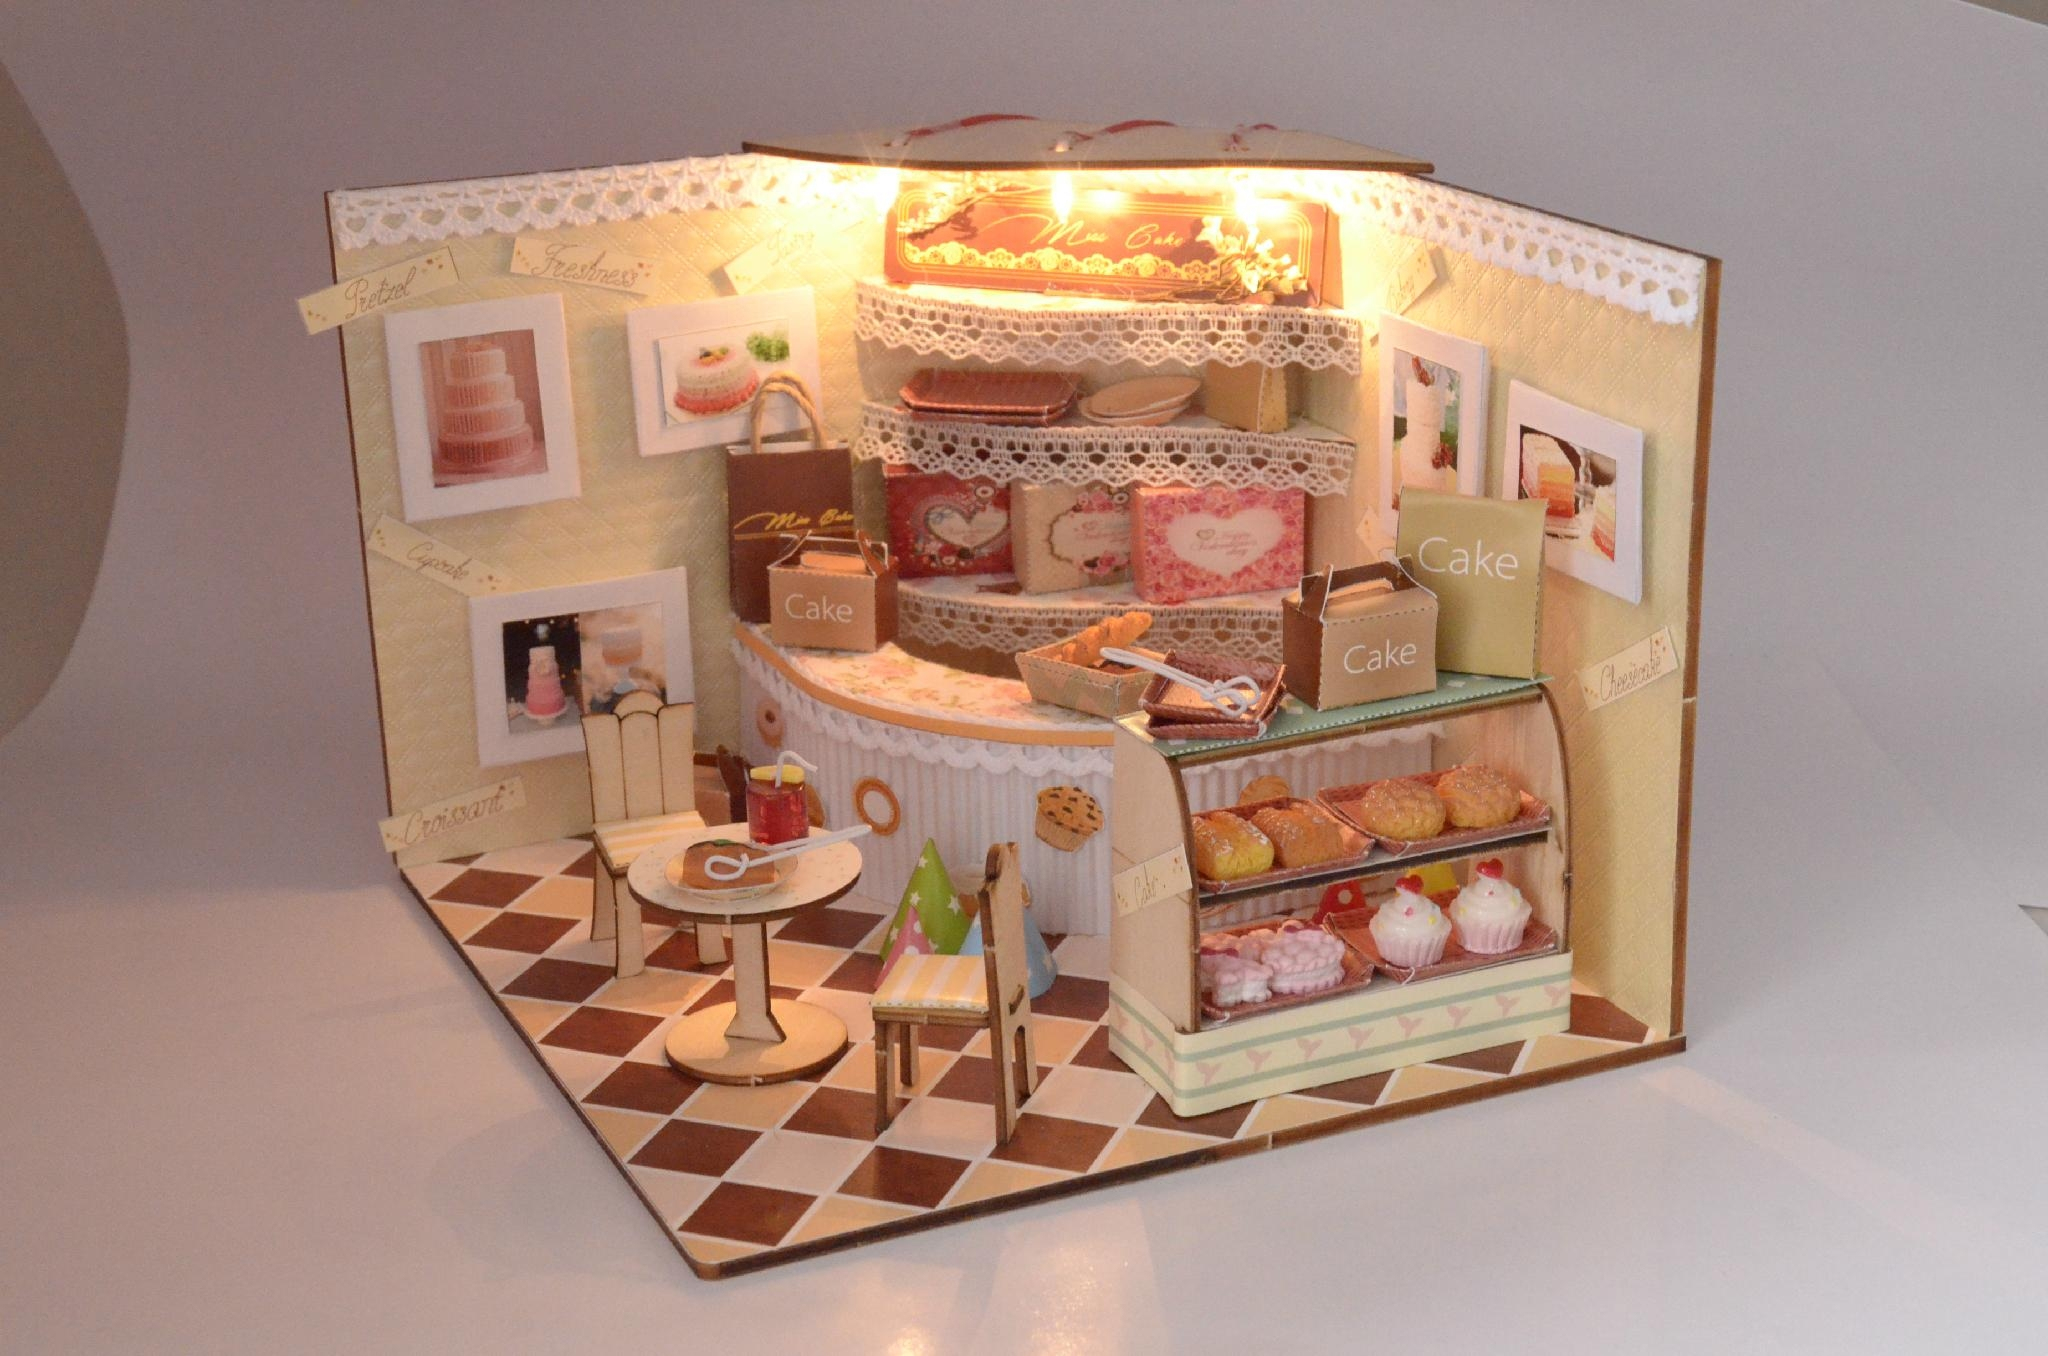 Dollhouse Design Cake : cake shop doll house plan toy model building DIY house ...